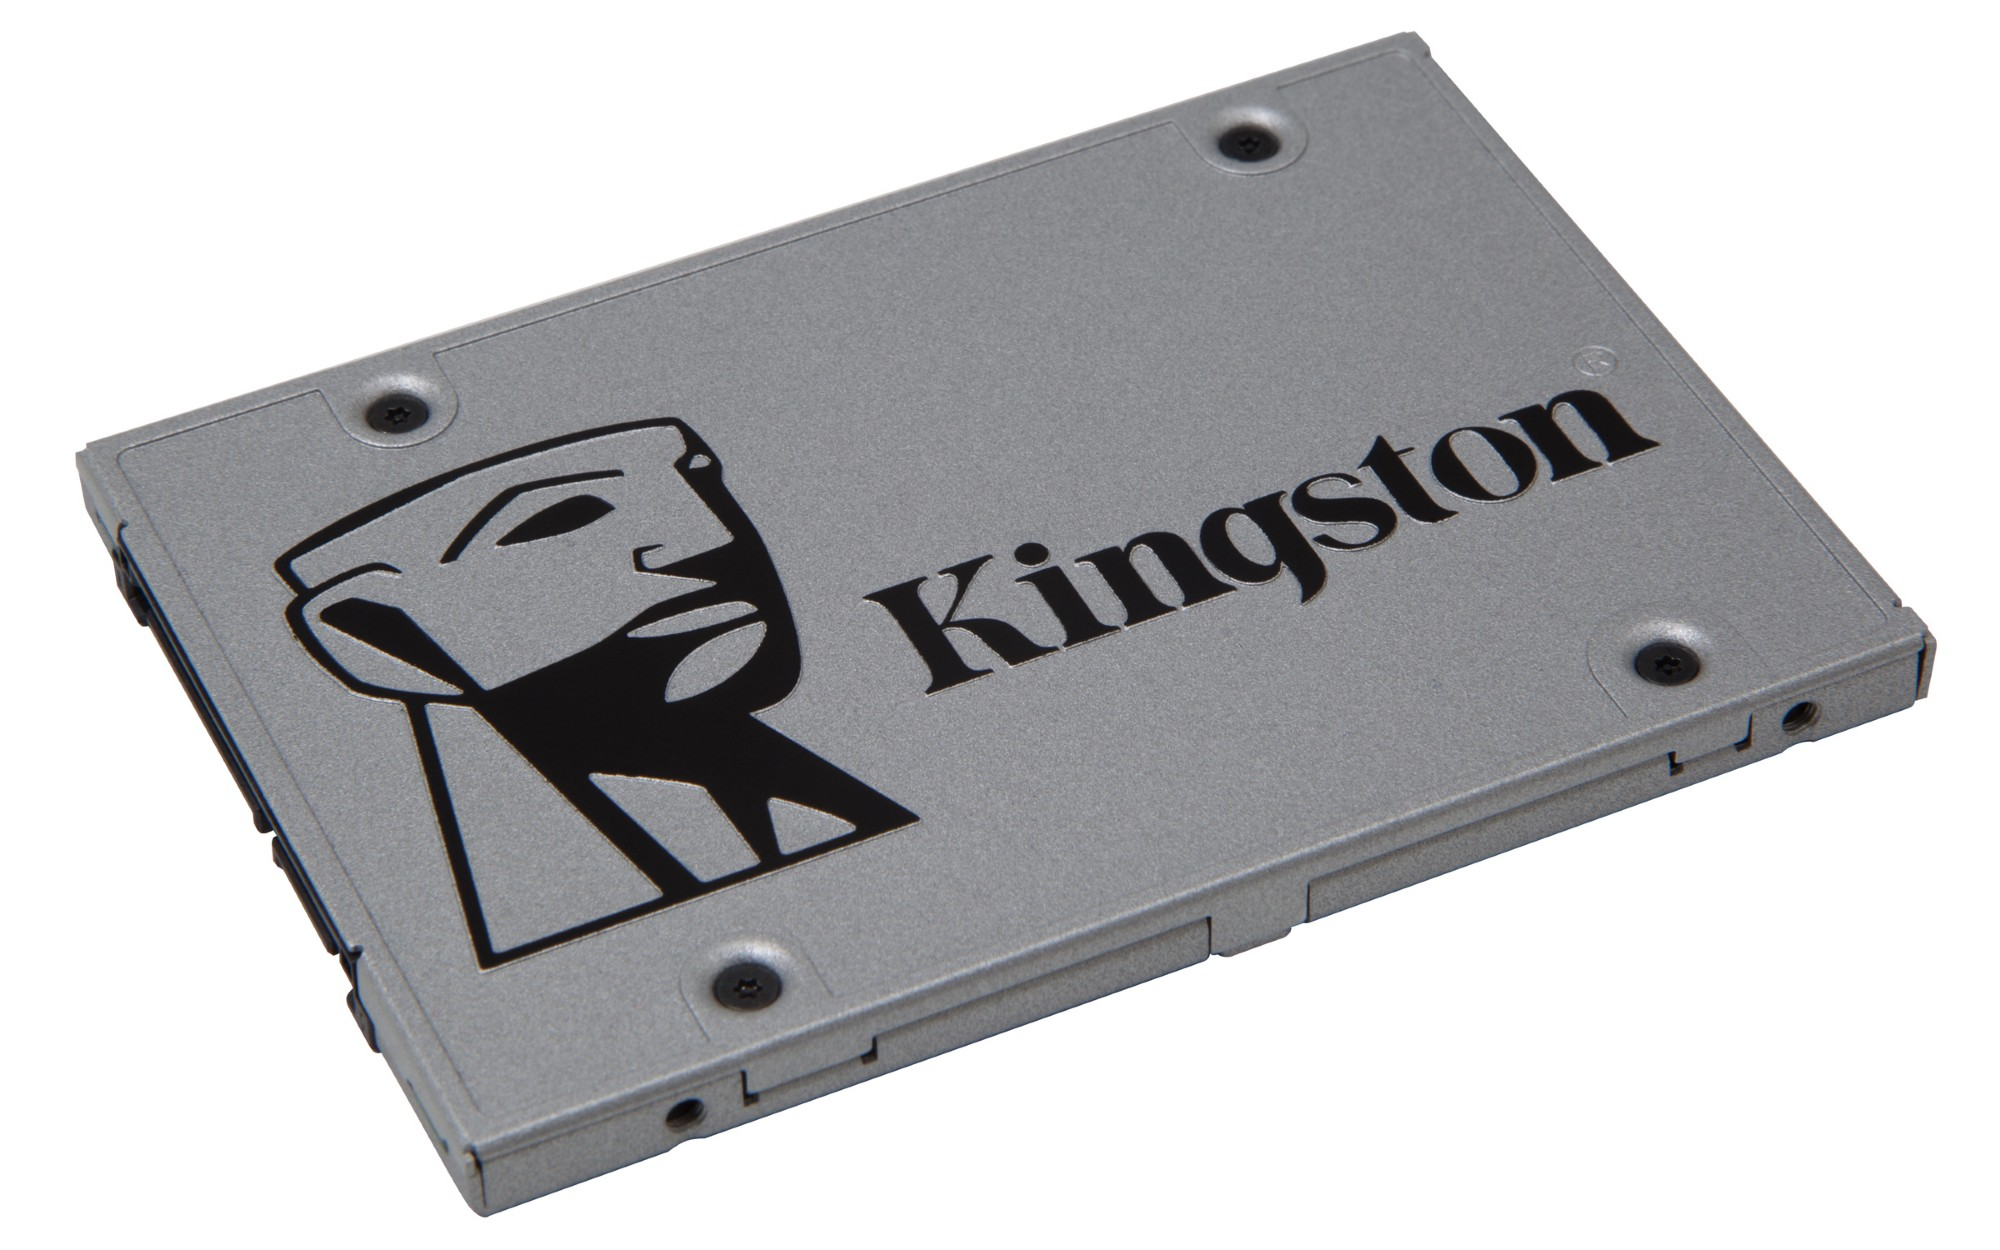 KINGSTON SSDNOW UV400 480GB 2.5